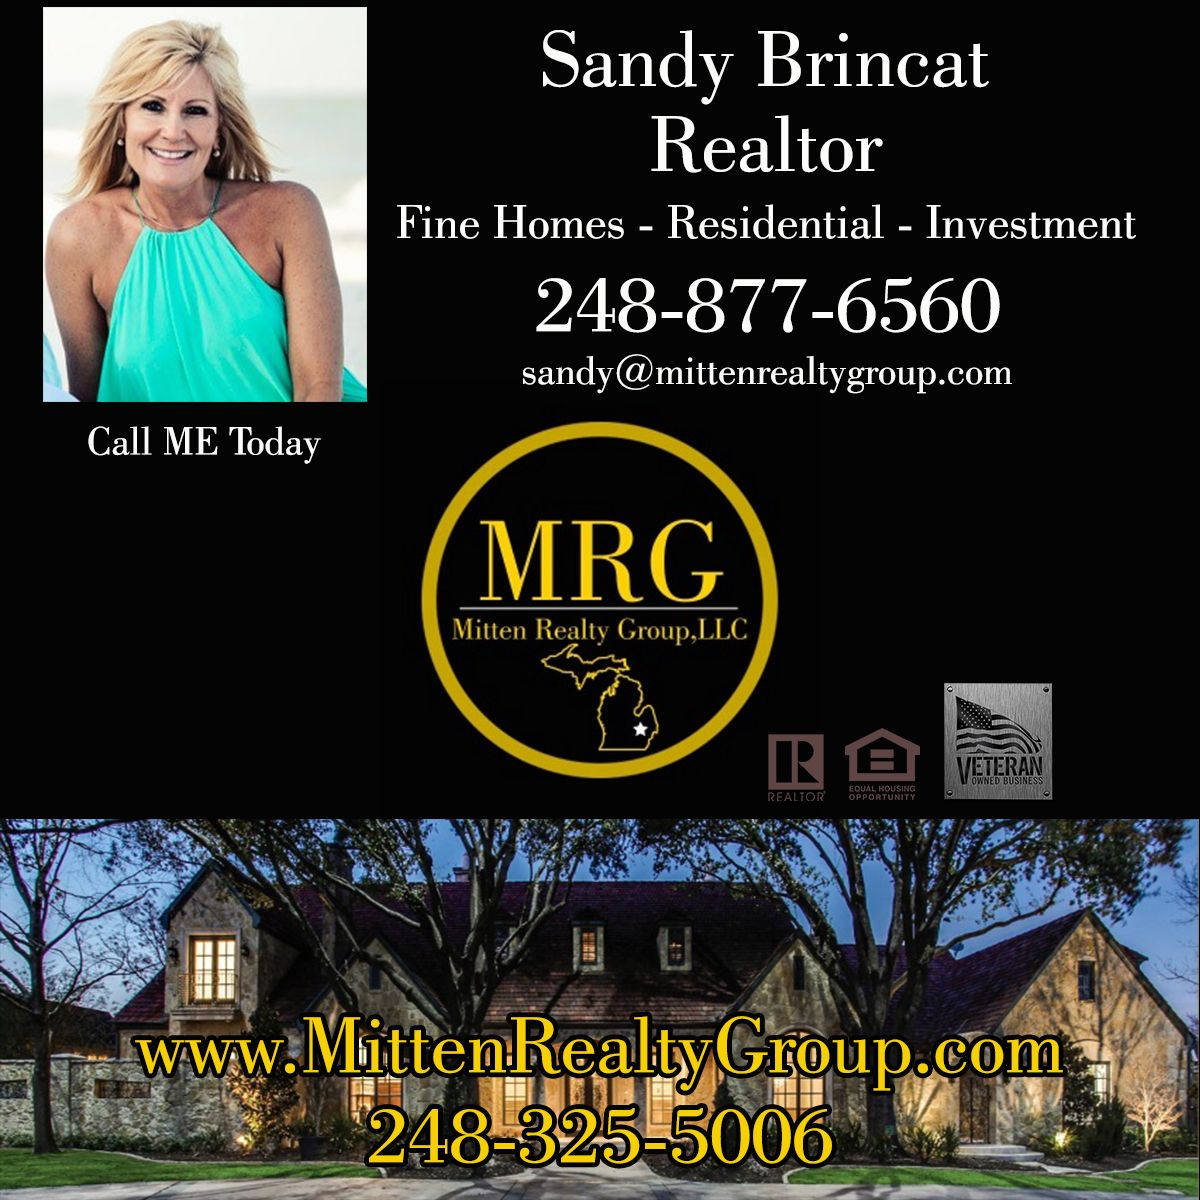 Let Sandy Brincat Help You Find A Home Or Investment Property In